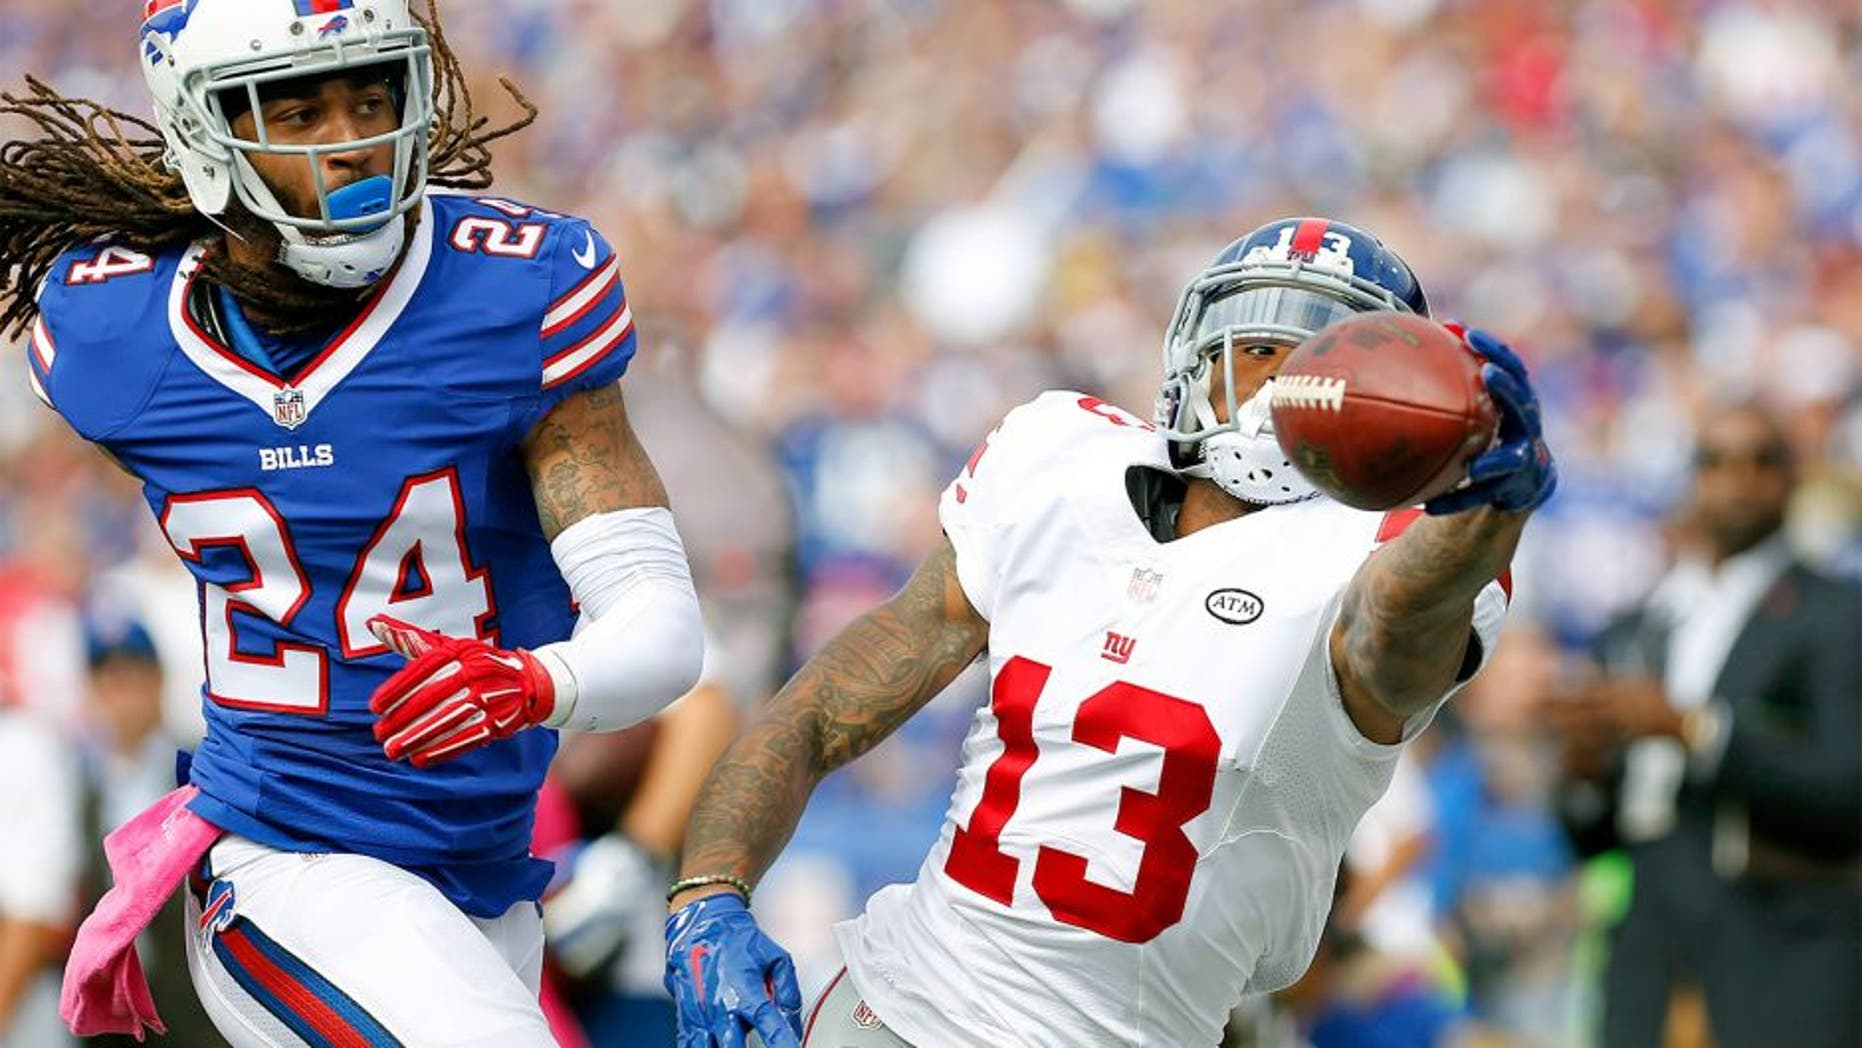 Oct 4, 2015; Orchard Park, NY, USA; New York Giants wide receiver Odell Beckham (13) reaches out but does not make the catch as Buffalo Bills cornerback Stephon Gilmore (24) defends during the first quarter at Ralph Wilson Stadium. Mandatory Credit: Kevin Hoffman-USA TODAY Sports